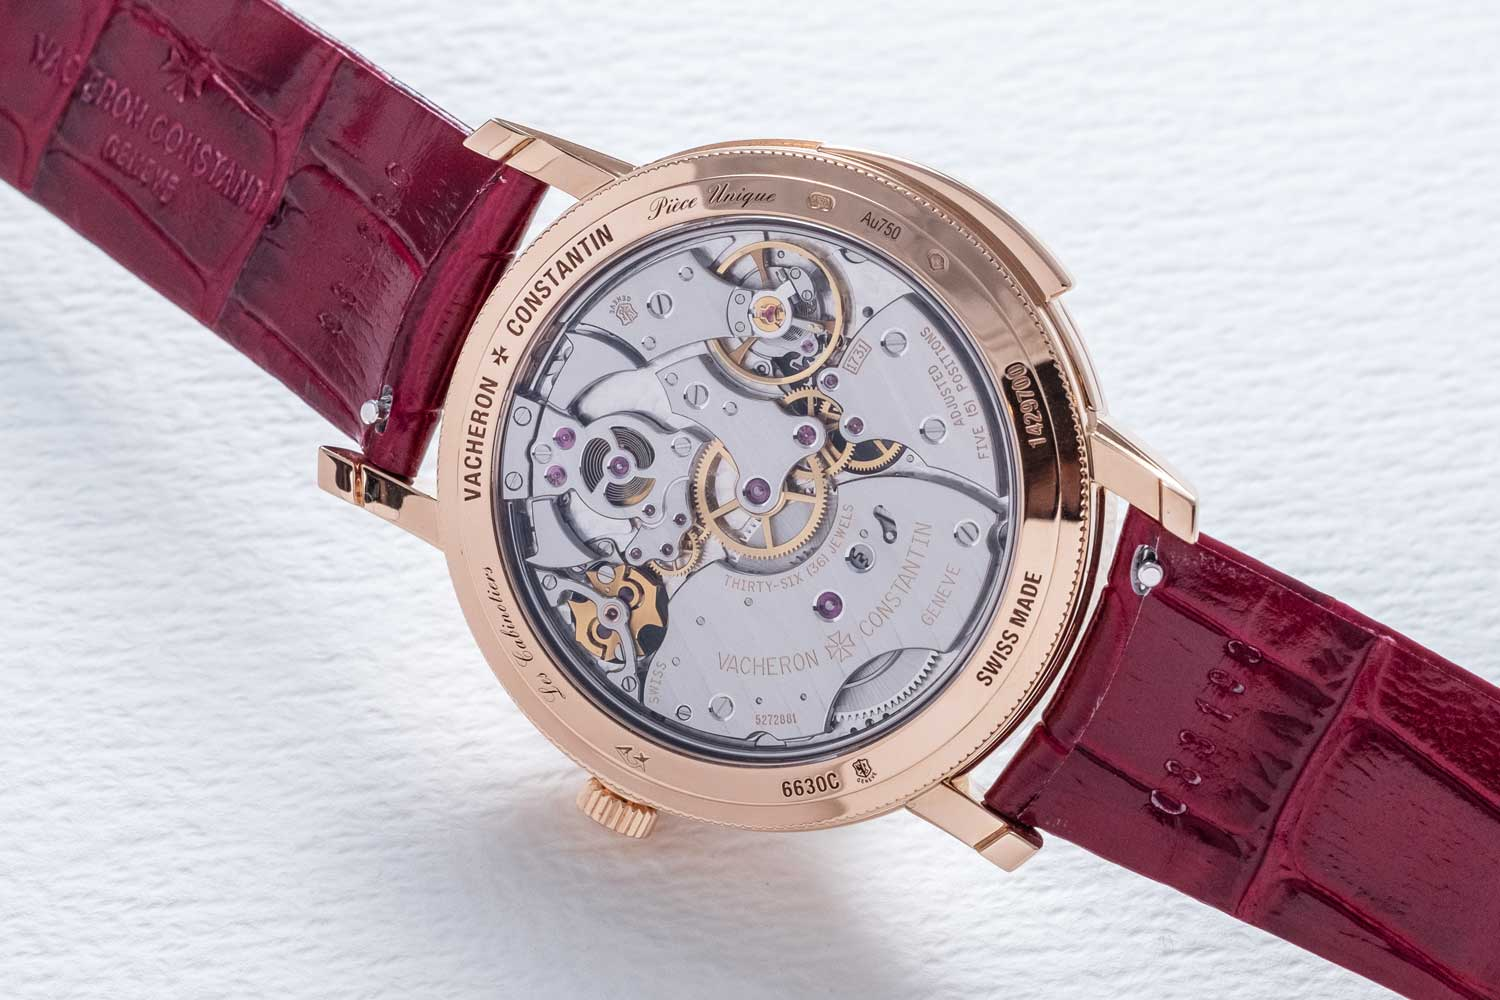 Les Cabinotiers Minute Repeater Ultra-thin - 41mm (Image © Revolution)